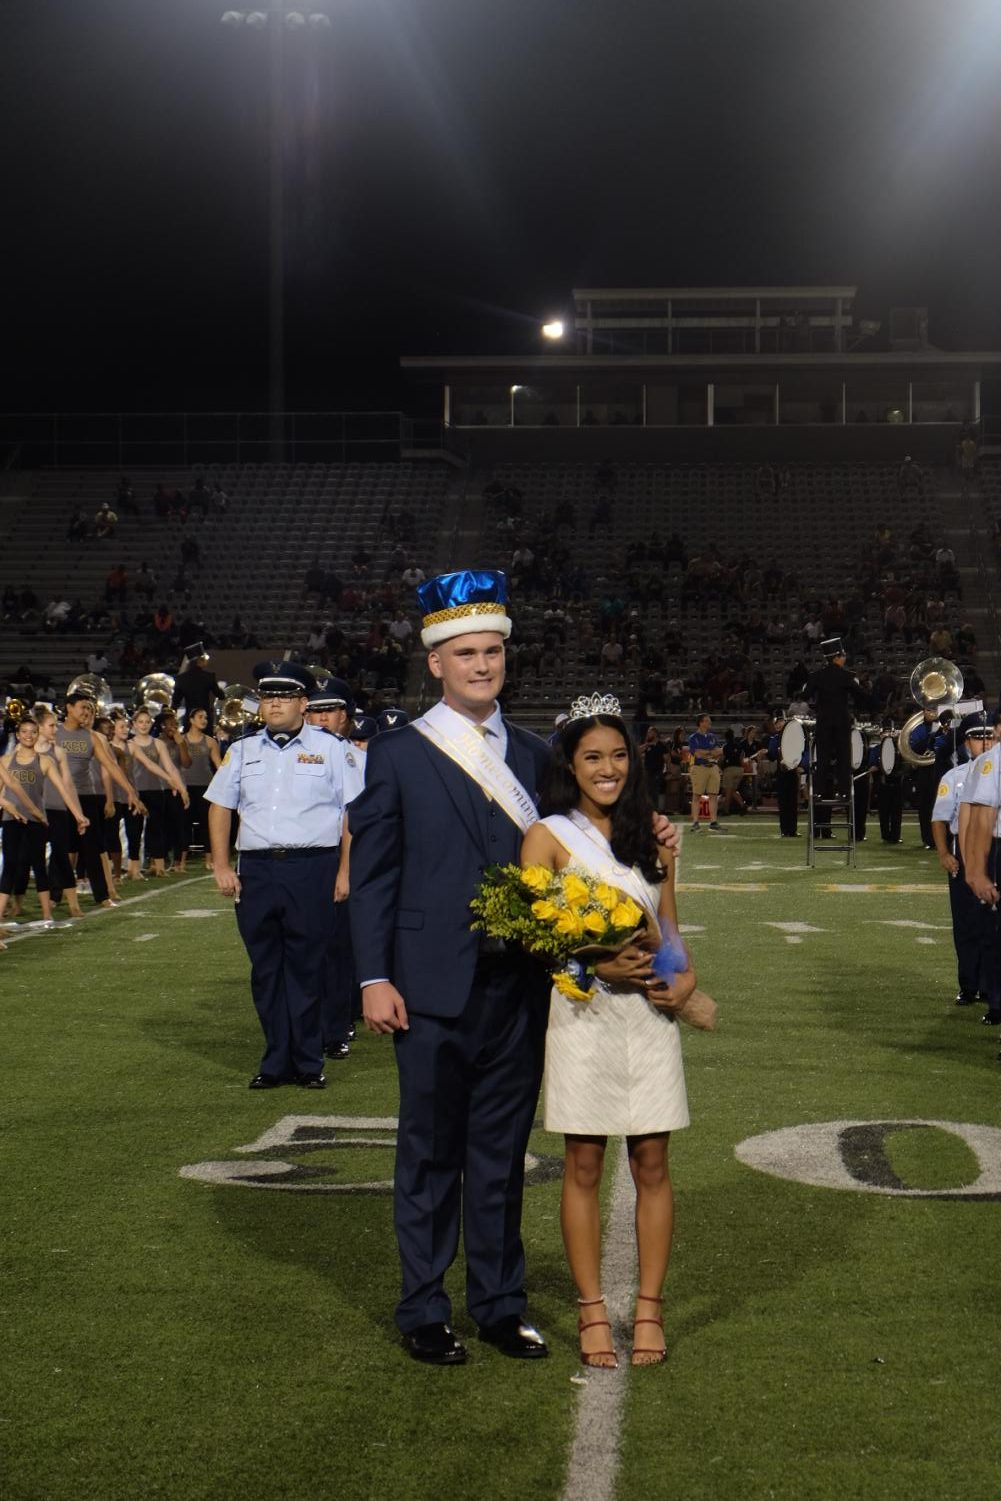 Seniors Andrew Hebert and Andreana DeGuzman pose after being crowned Homecoming King and Queen